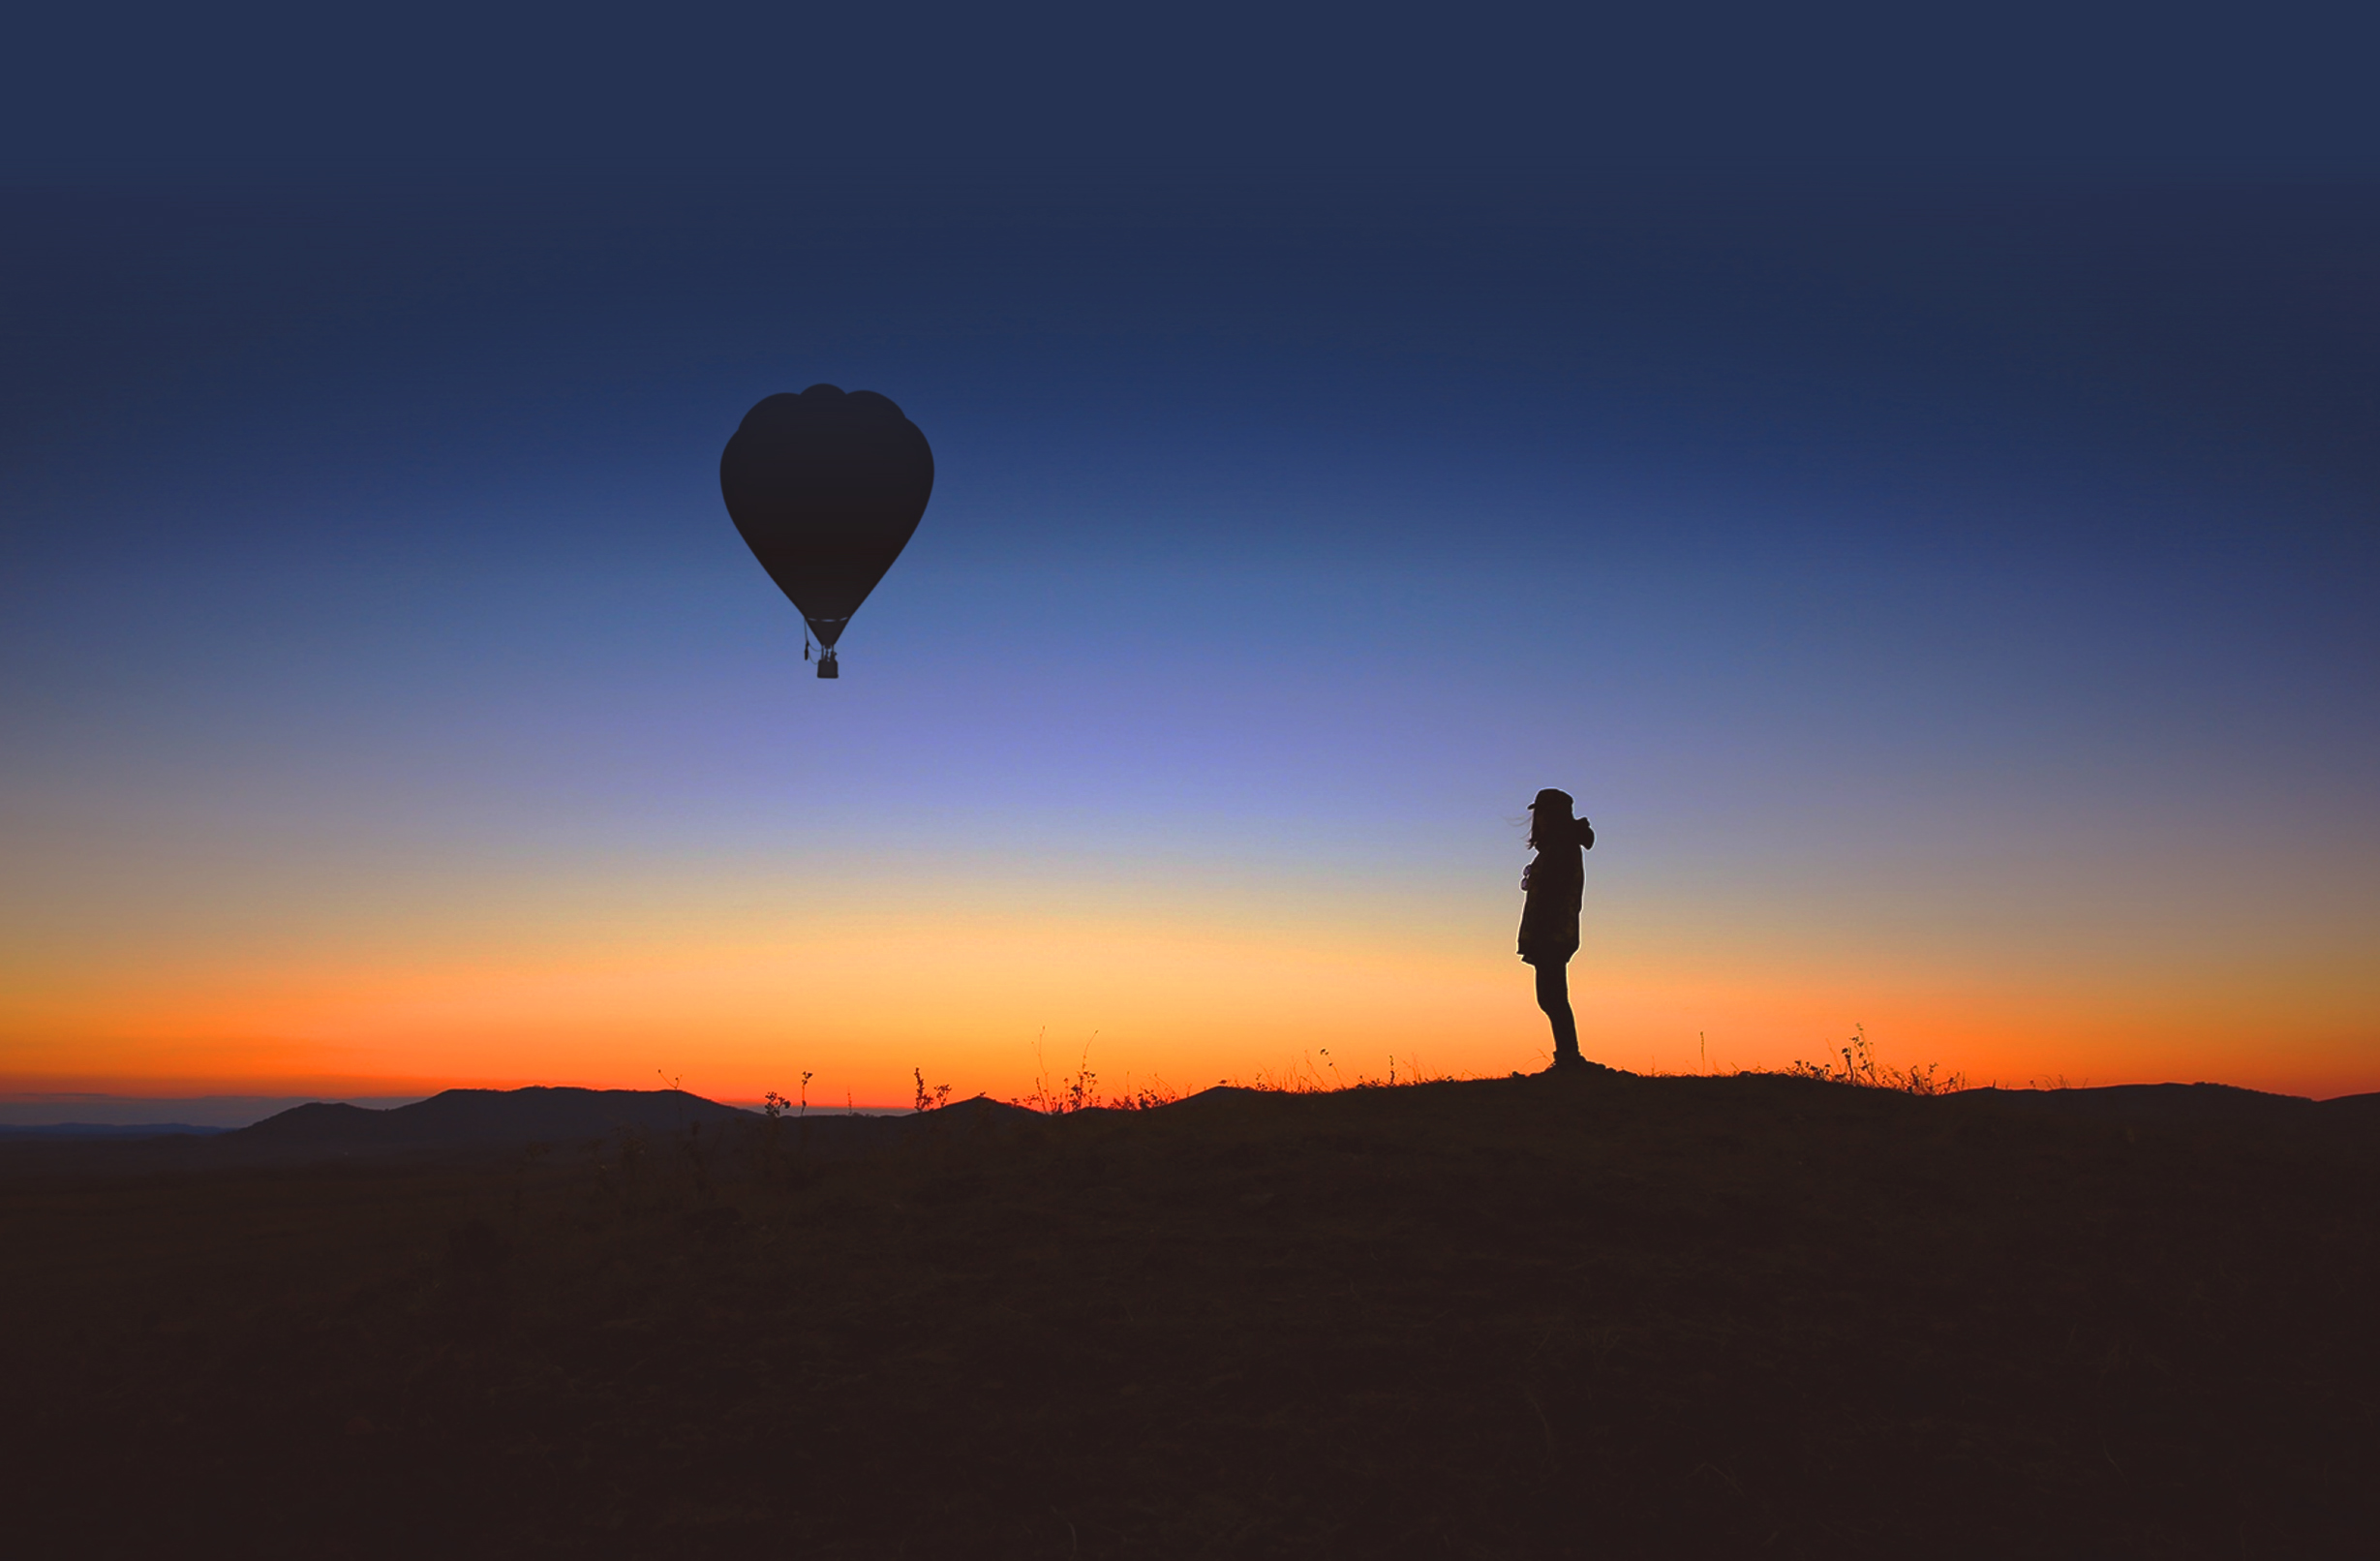 Alone person observes an hot air balloon at sunrise, Adventure, Peaceful, Red, Recreation, HQ Photo